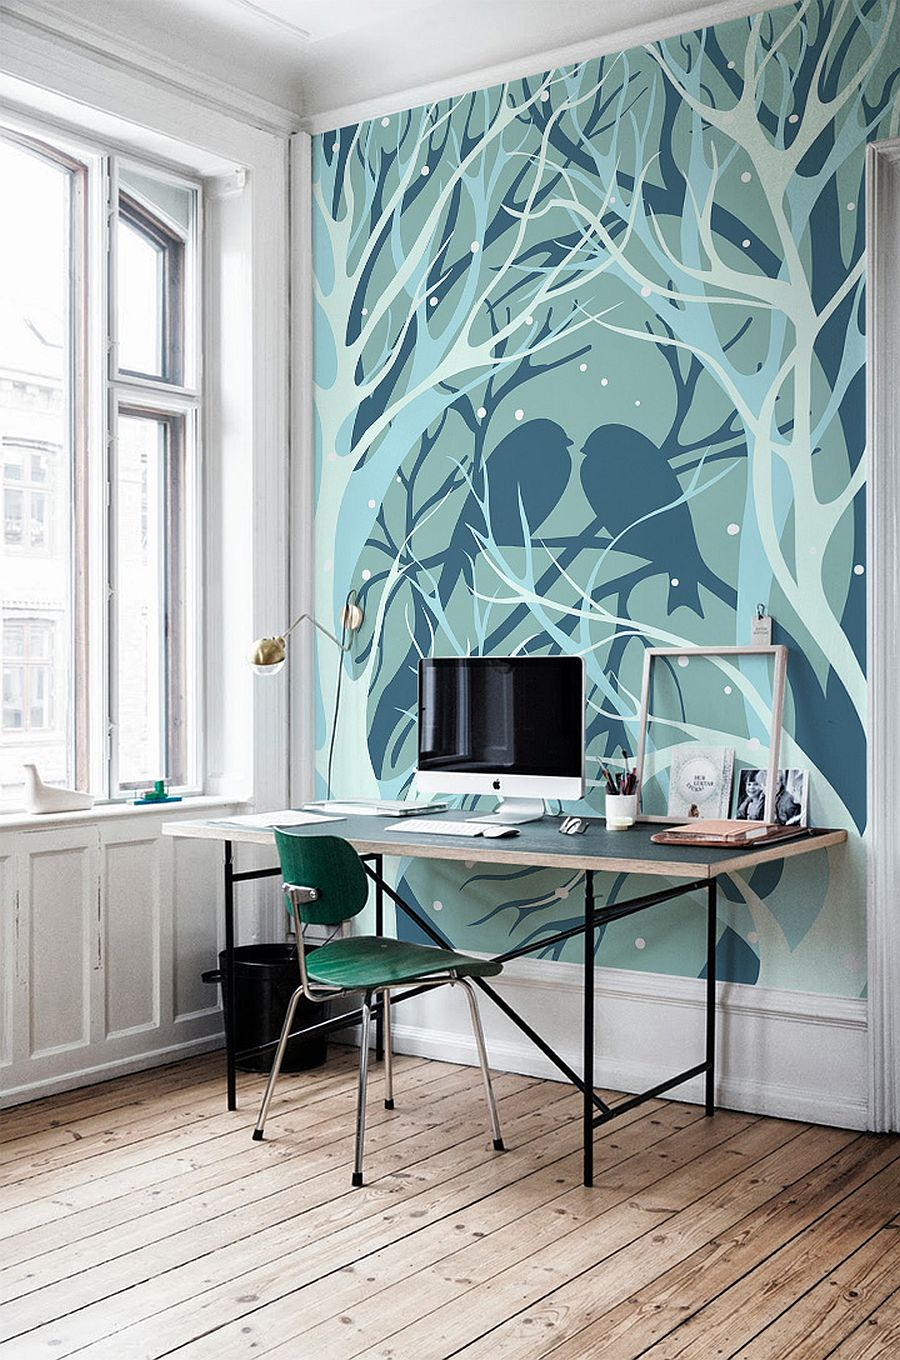 40-the-most-incredible-wall-murals-designs (26)